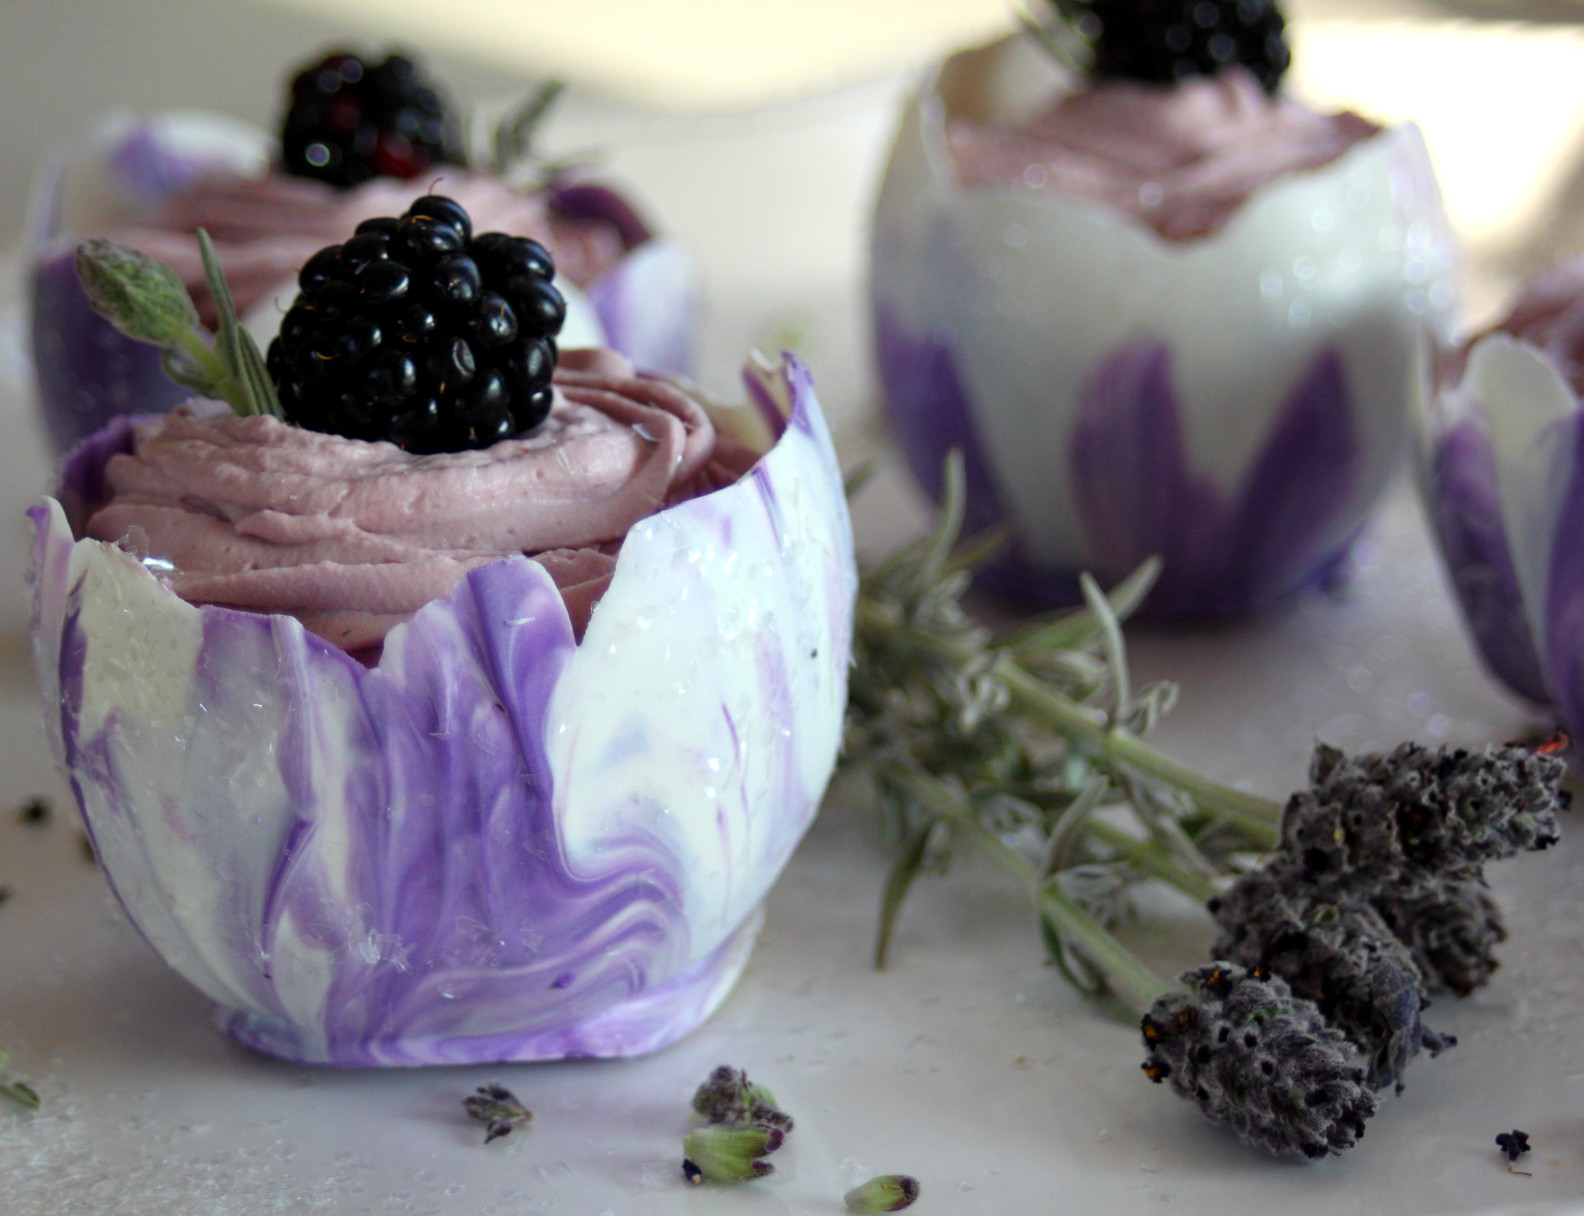 BLACKBERRY LAVENDAR LOTUS CUPS